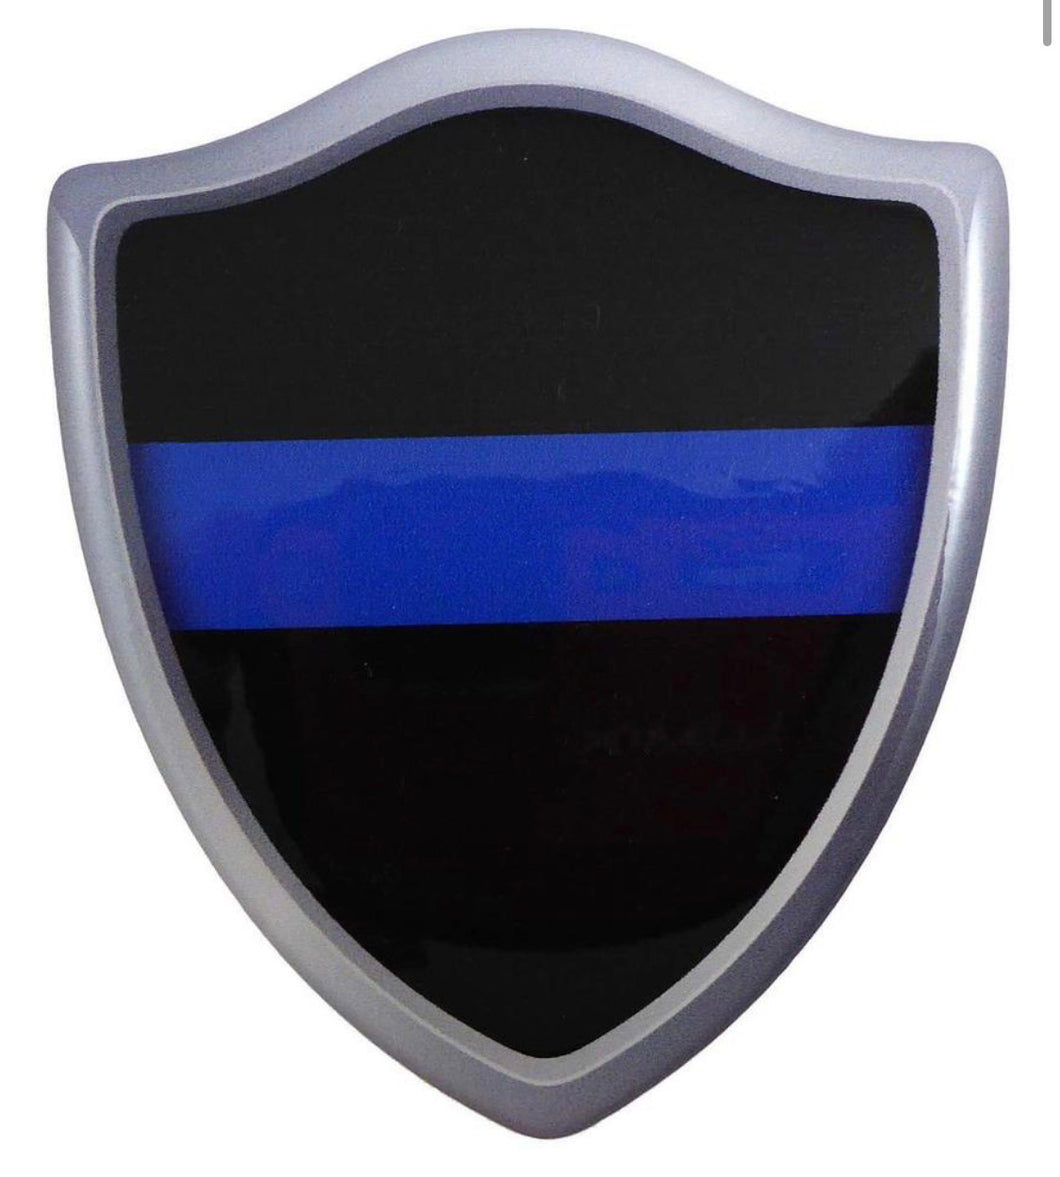 "3"" x 2.6"" Thin Blue Line Shield Crest Domed Decal 3D Look Emblem"